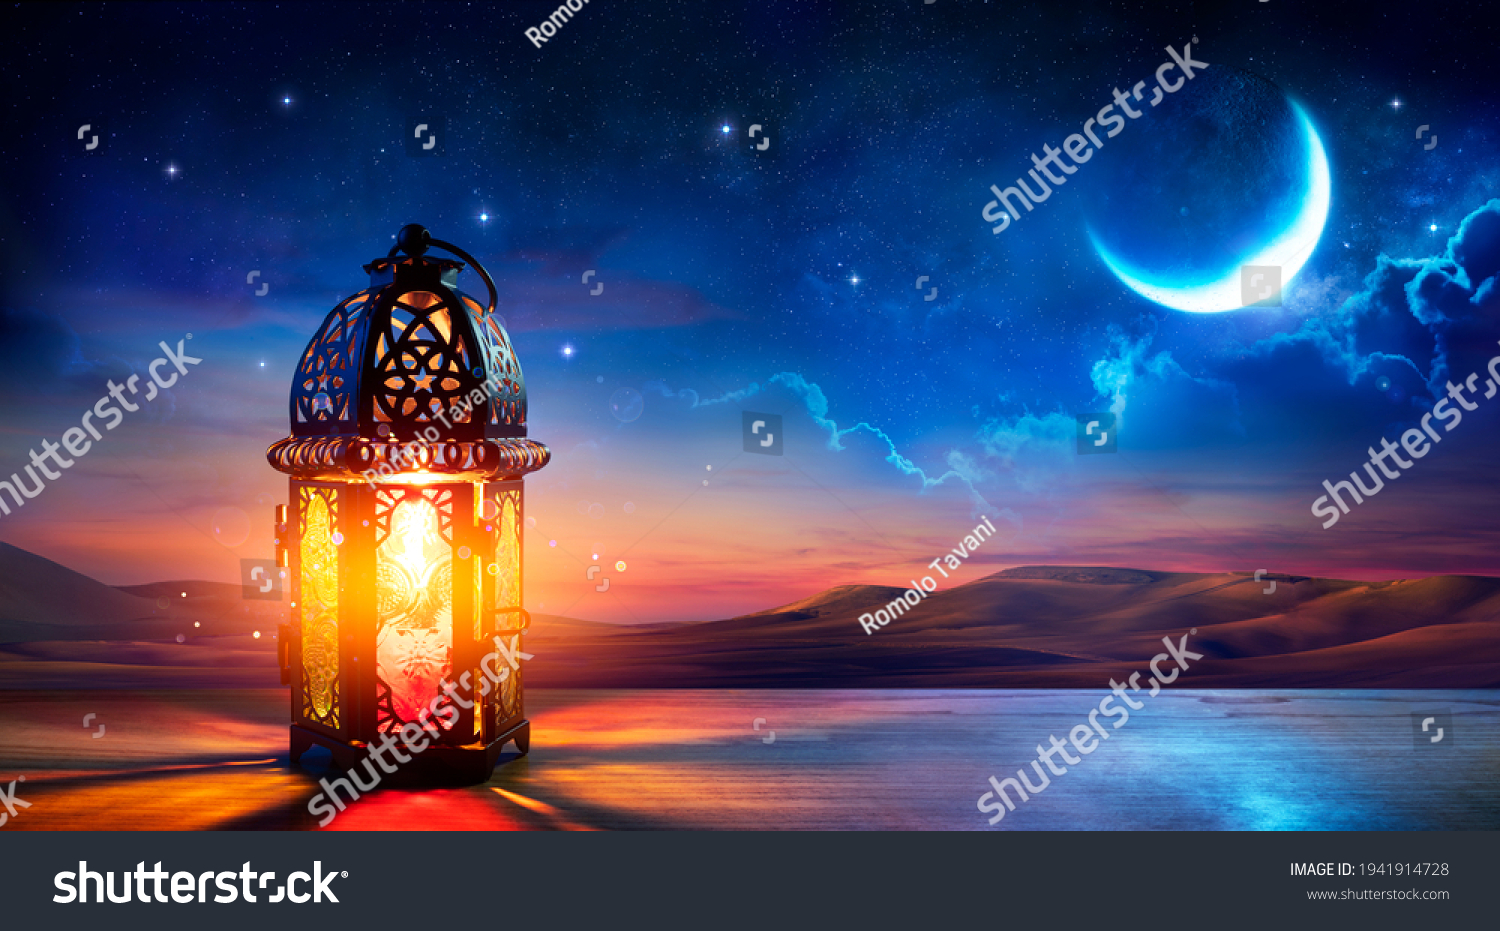 Muslim Holy Month Ramadan Kareem - Ornamental Arabic Lantern With Burning Candle Glowing At Evening #1941914728